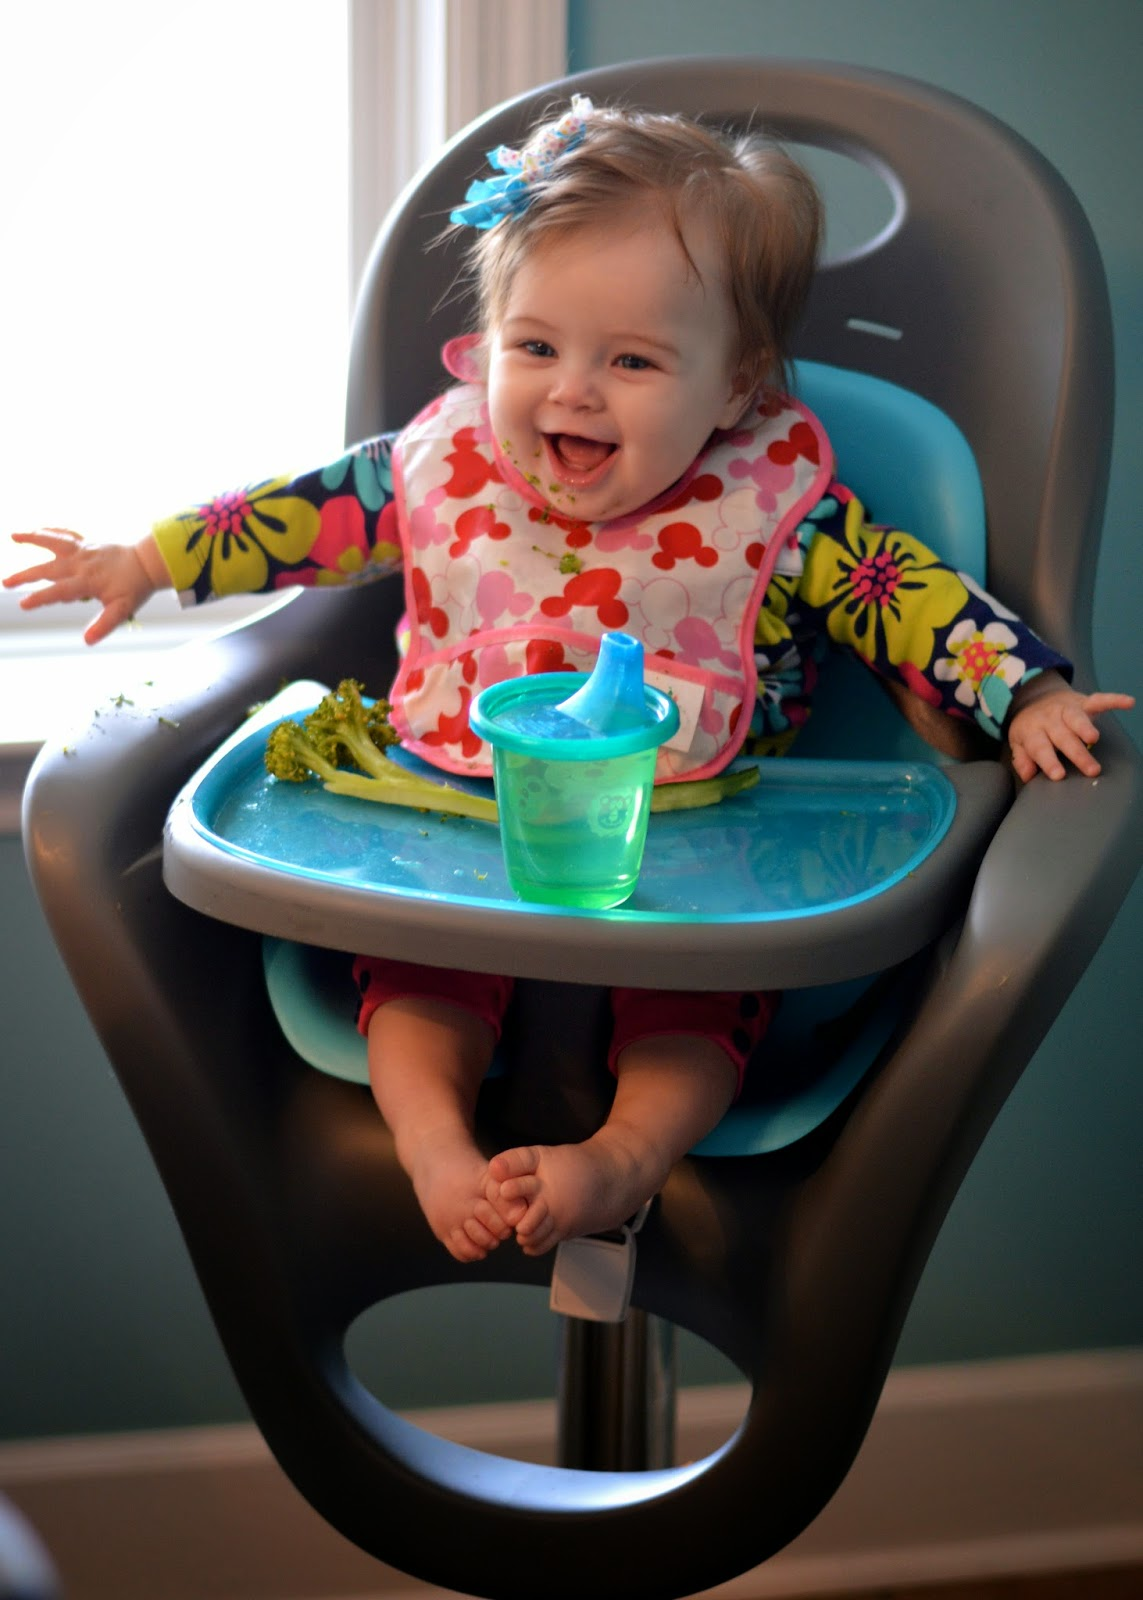 the journey of parenthood best baby led weaning high chair - i could not be more happy with our high chair i'm so glad we decided topurchase the boon high chair